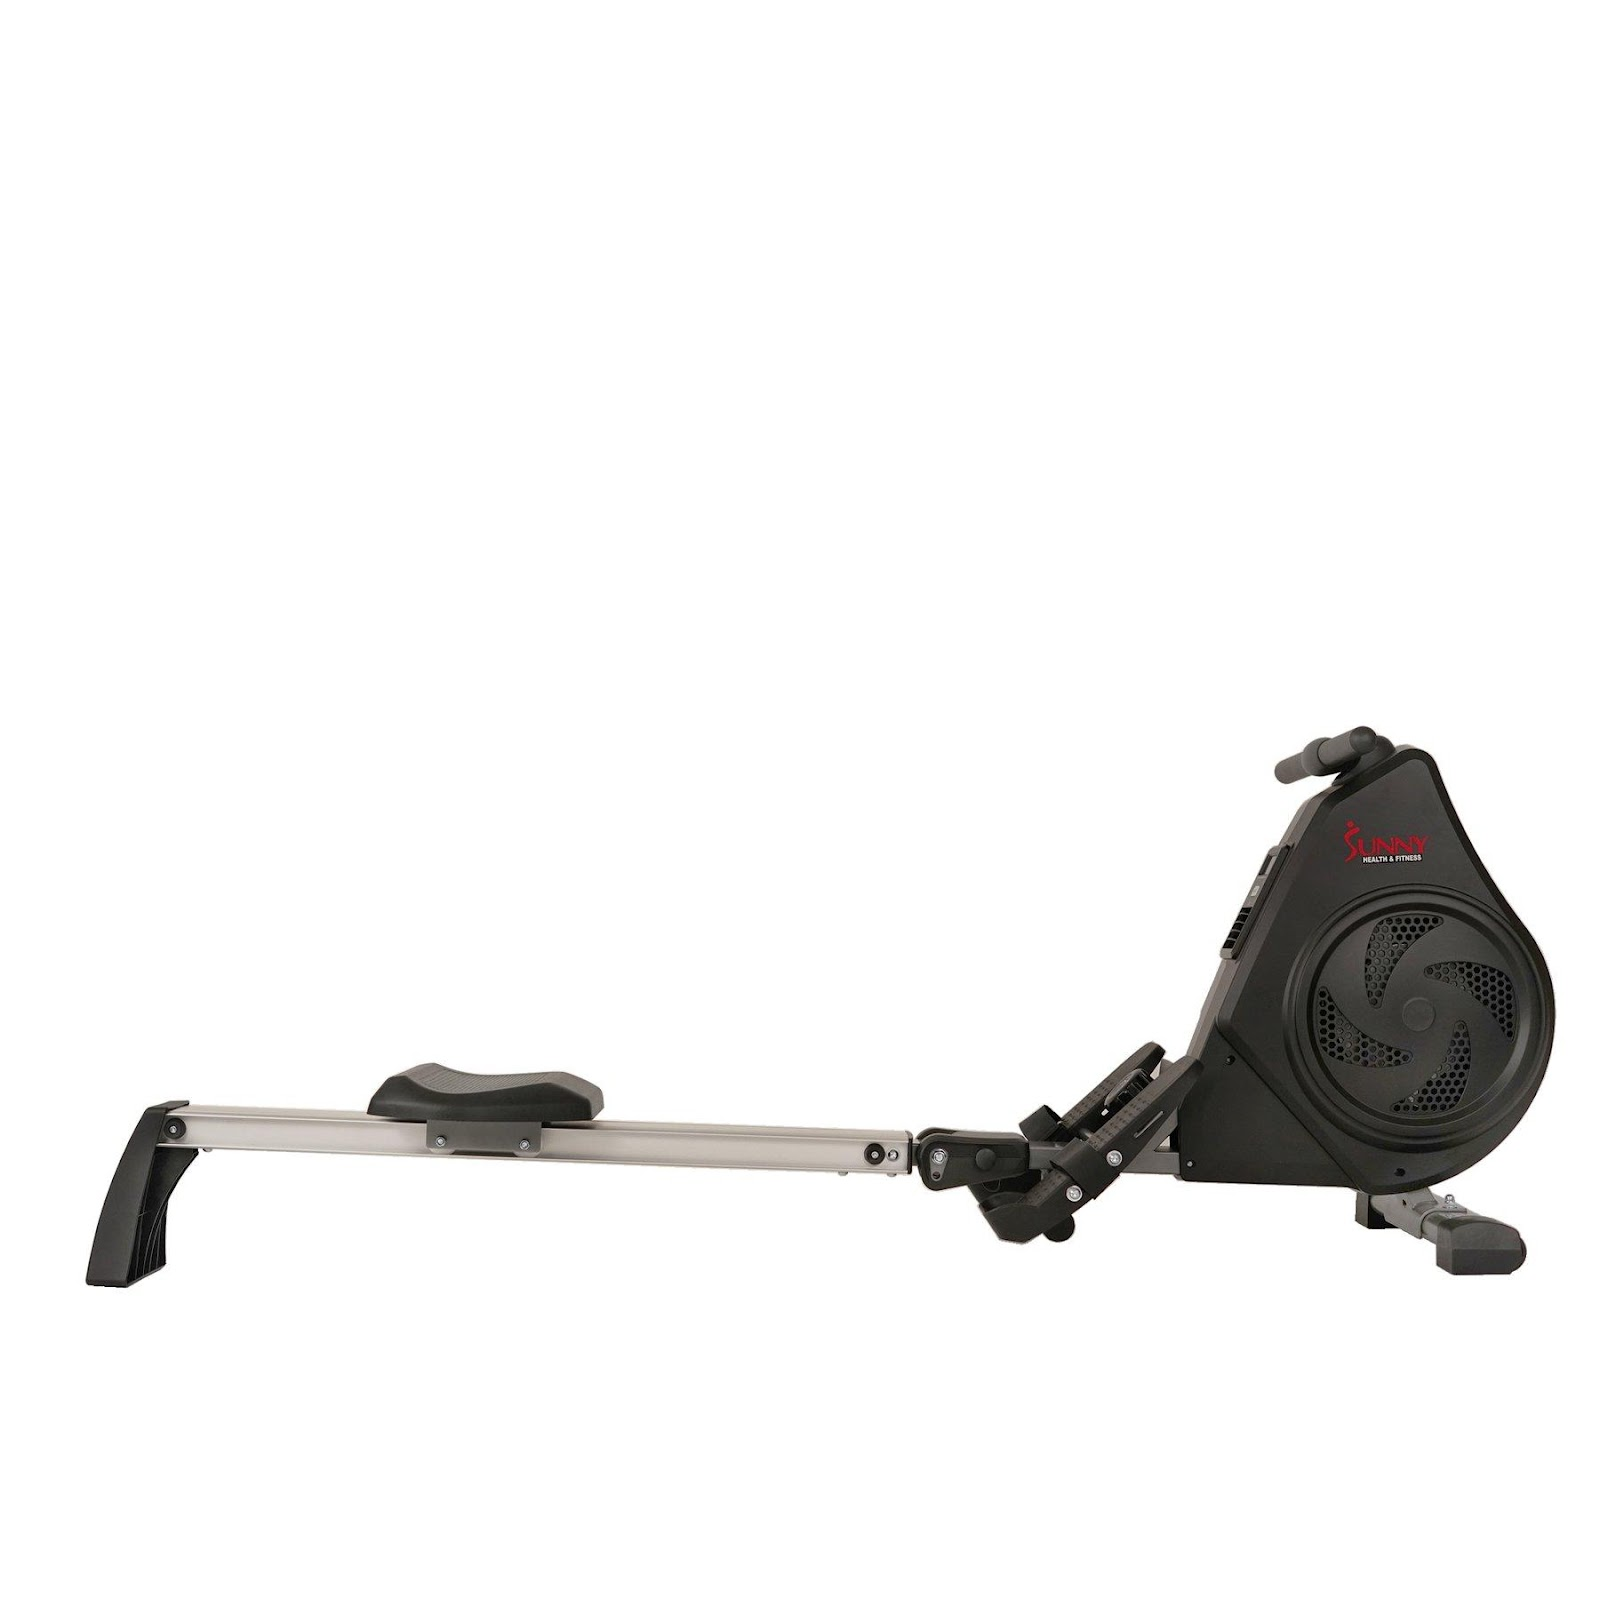 Sunny and healthSE RW5730 folding rowing machine